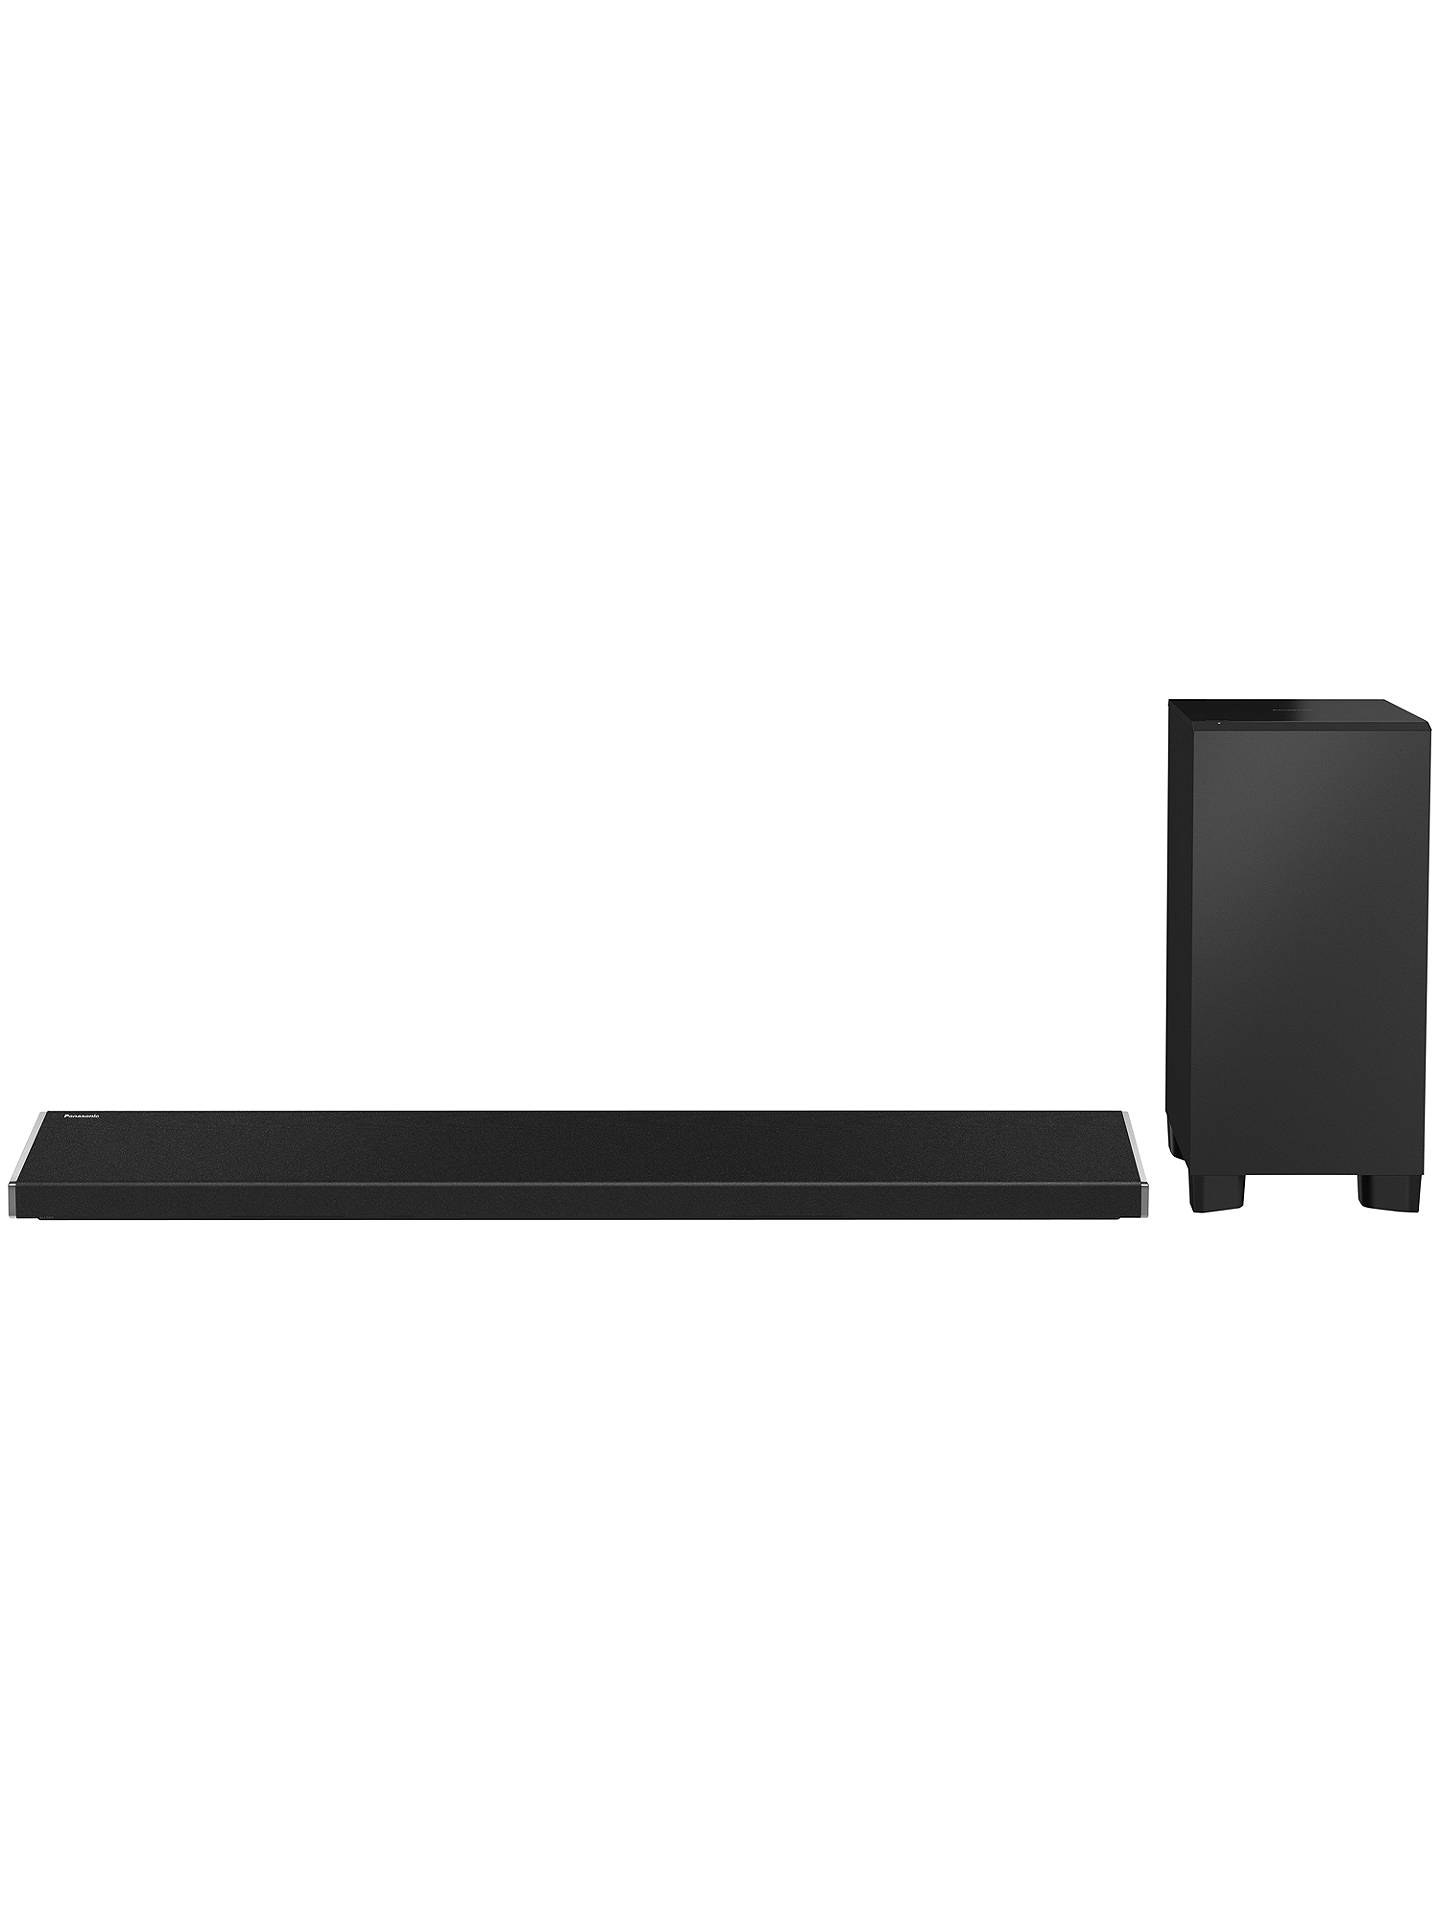 Buy Panasonic ALL70T Multiroom 3.1 Bluetooth NFC Sound Bar with Wireless Subwoofer Online at johnlewis.com